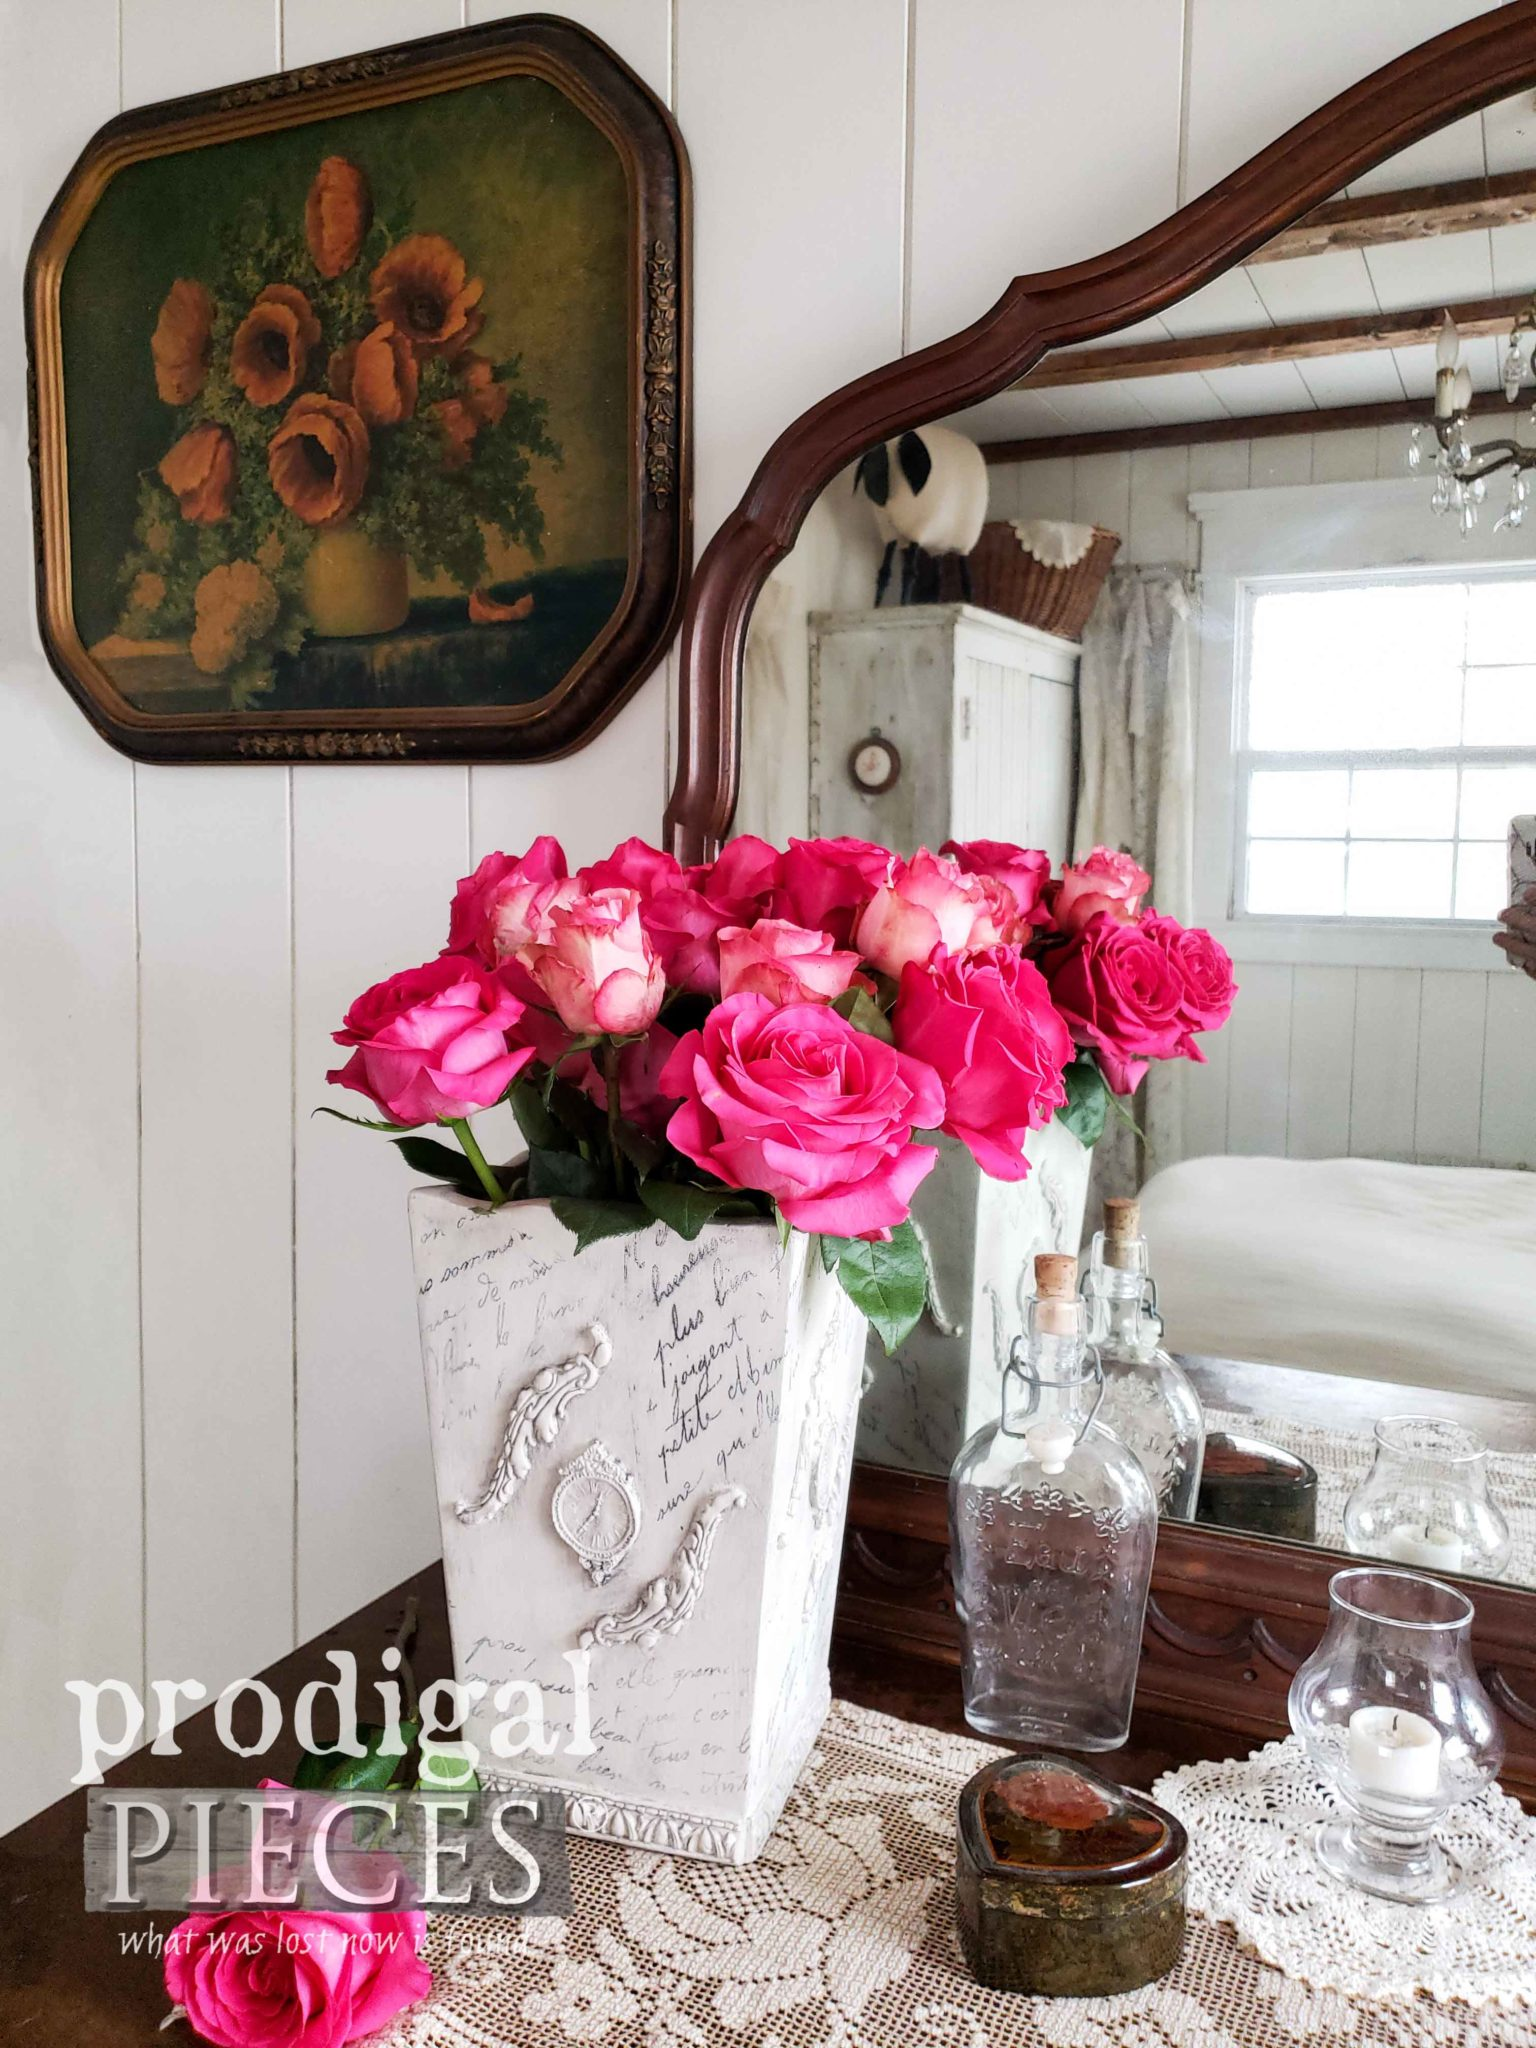 French Chic Vase with DIY Video Tutorial by Larissa of Prodigal Pieces | prodigalpieces.com #prodigalpieces #diy #home #vintage #homedecor #shabbychic